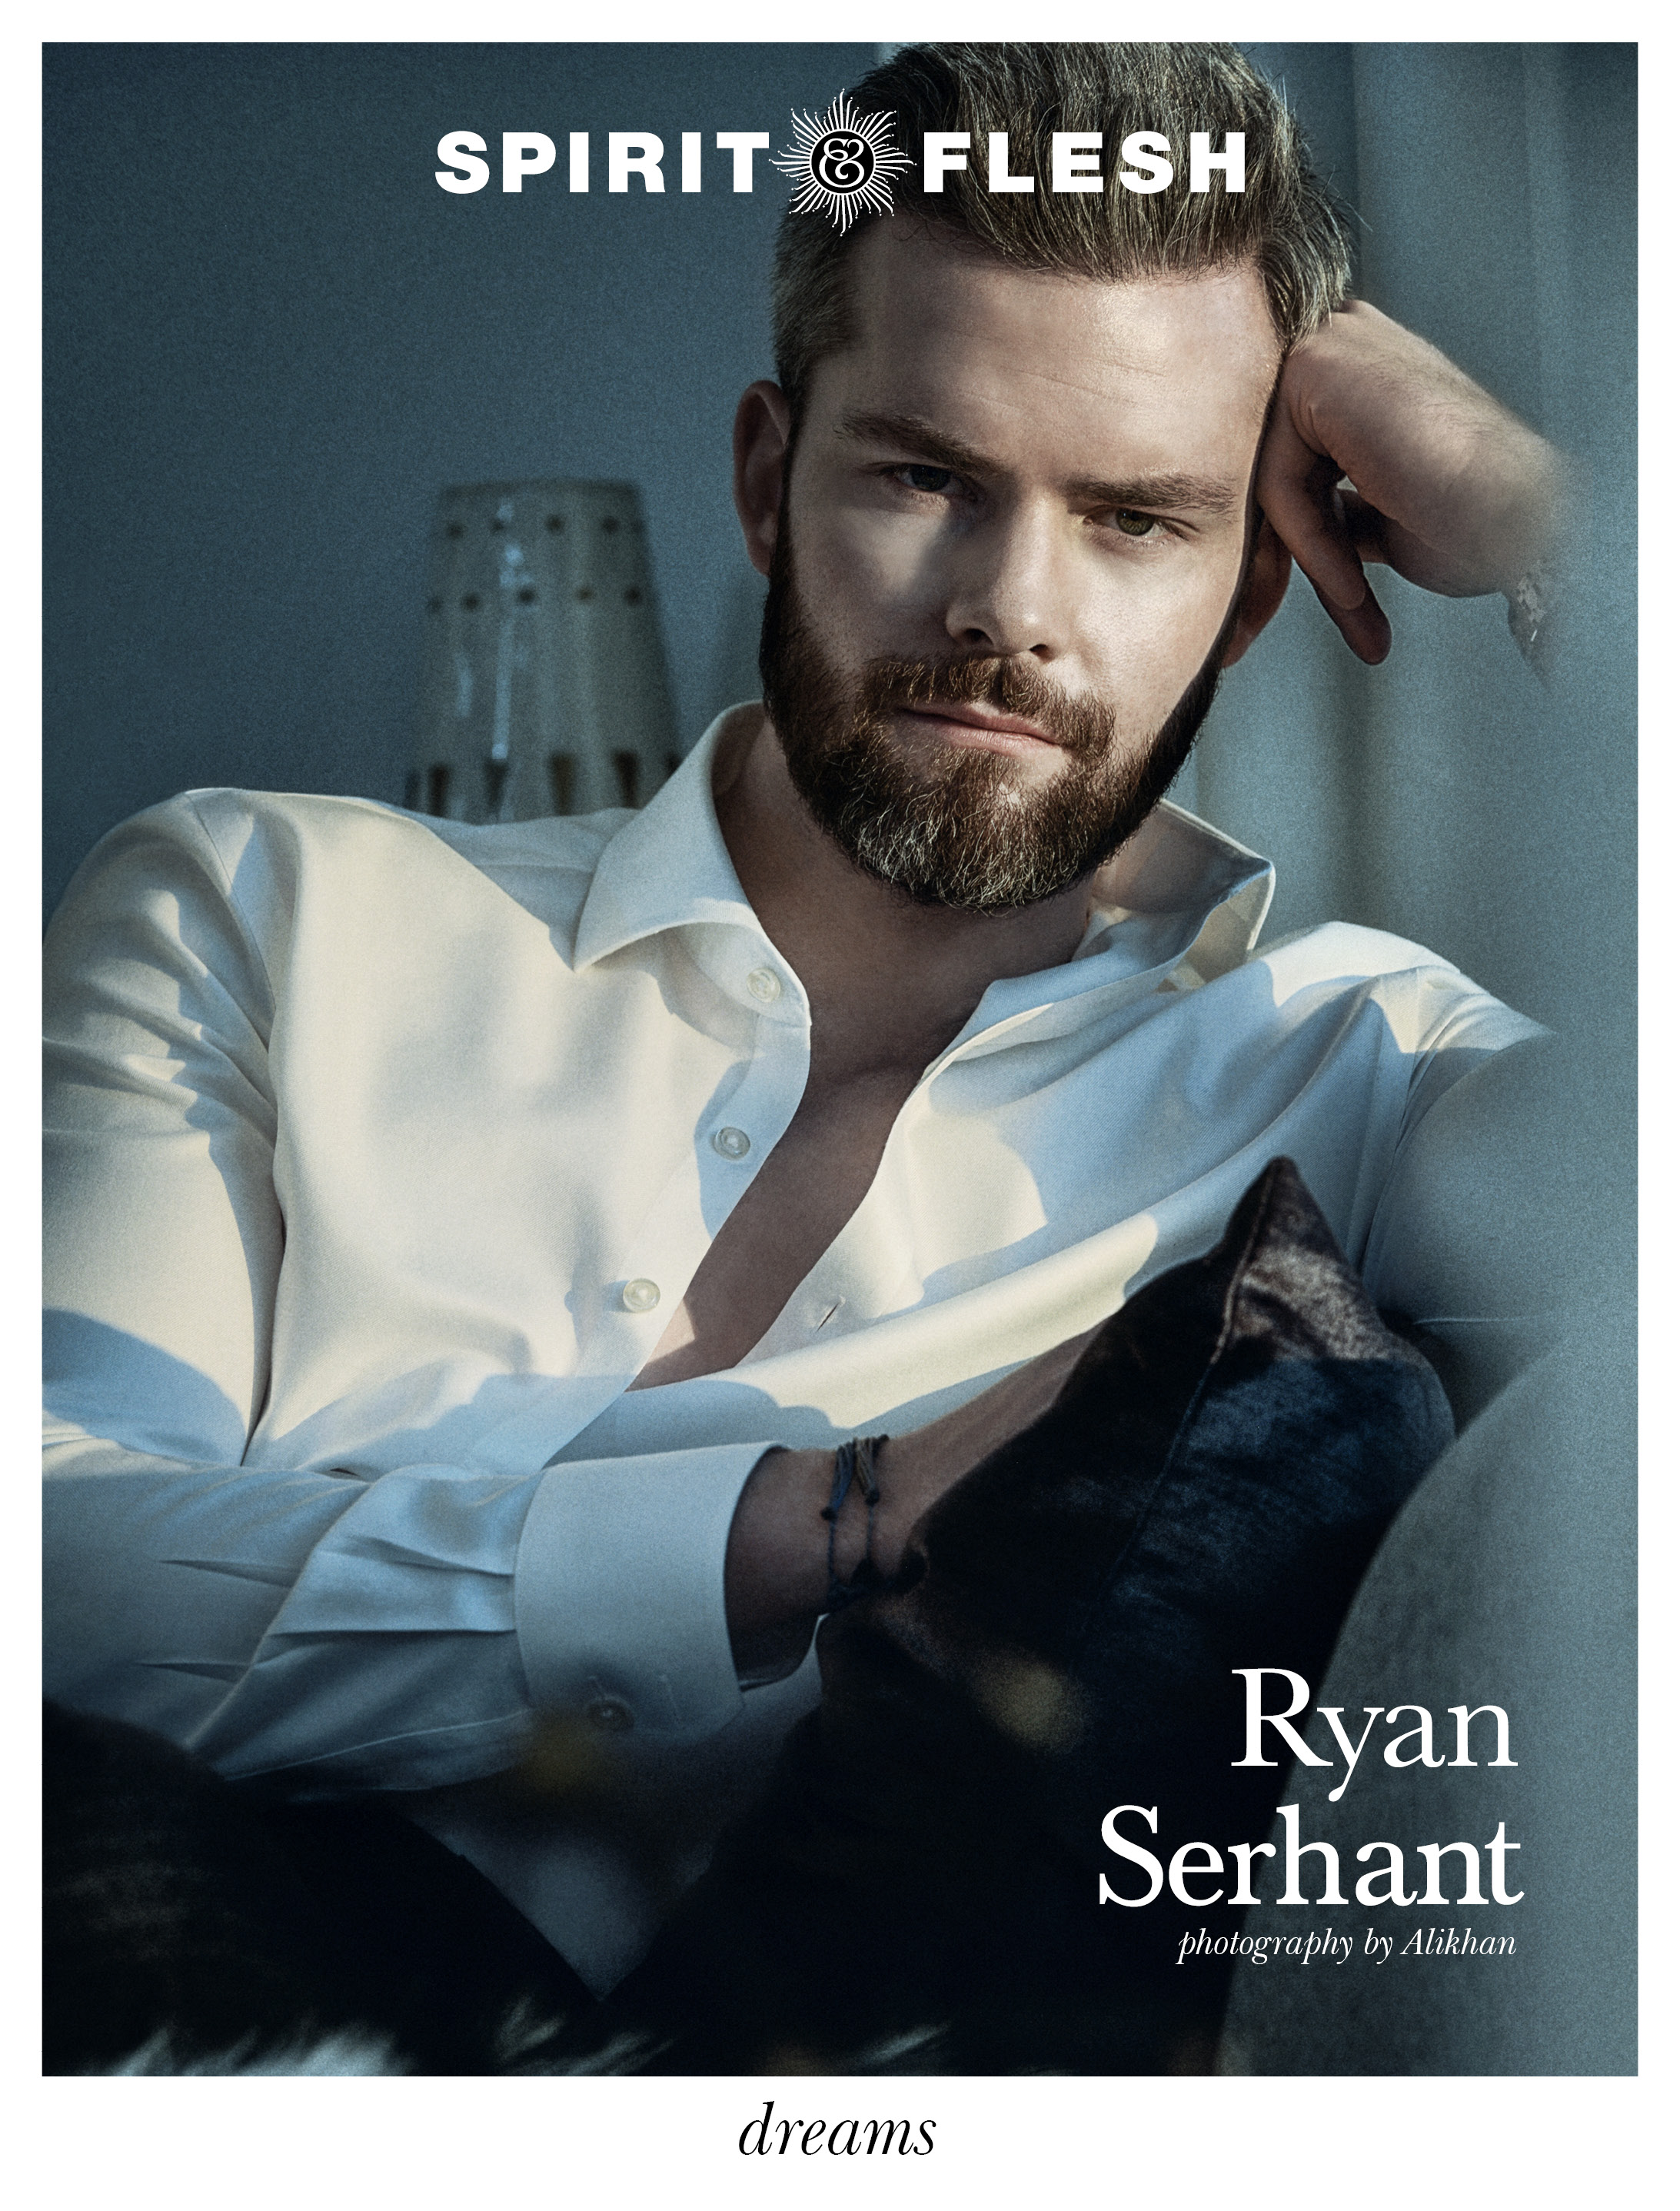 5-Spirit-&-Flesh-Magazine_Dreams-issue-Cover_RYAN SERHANT by Alikhan